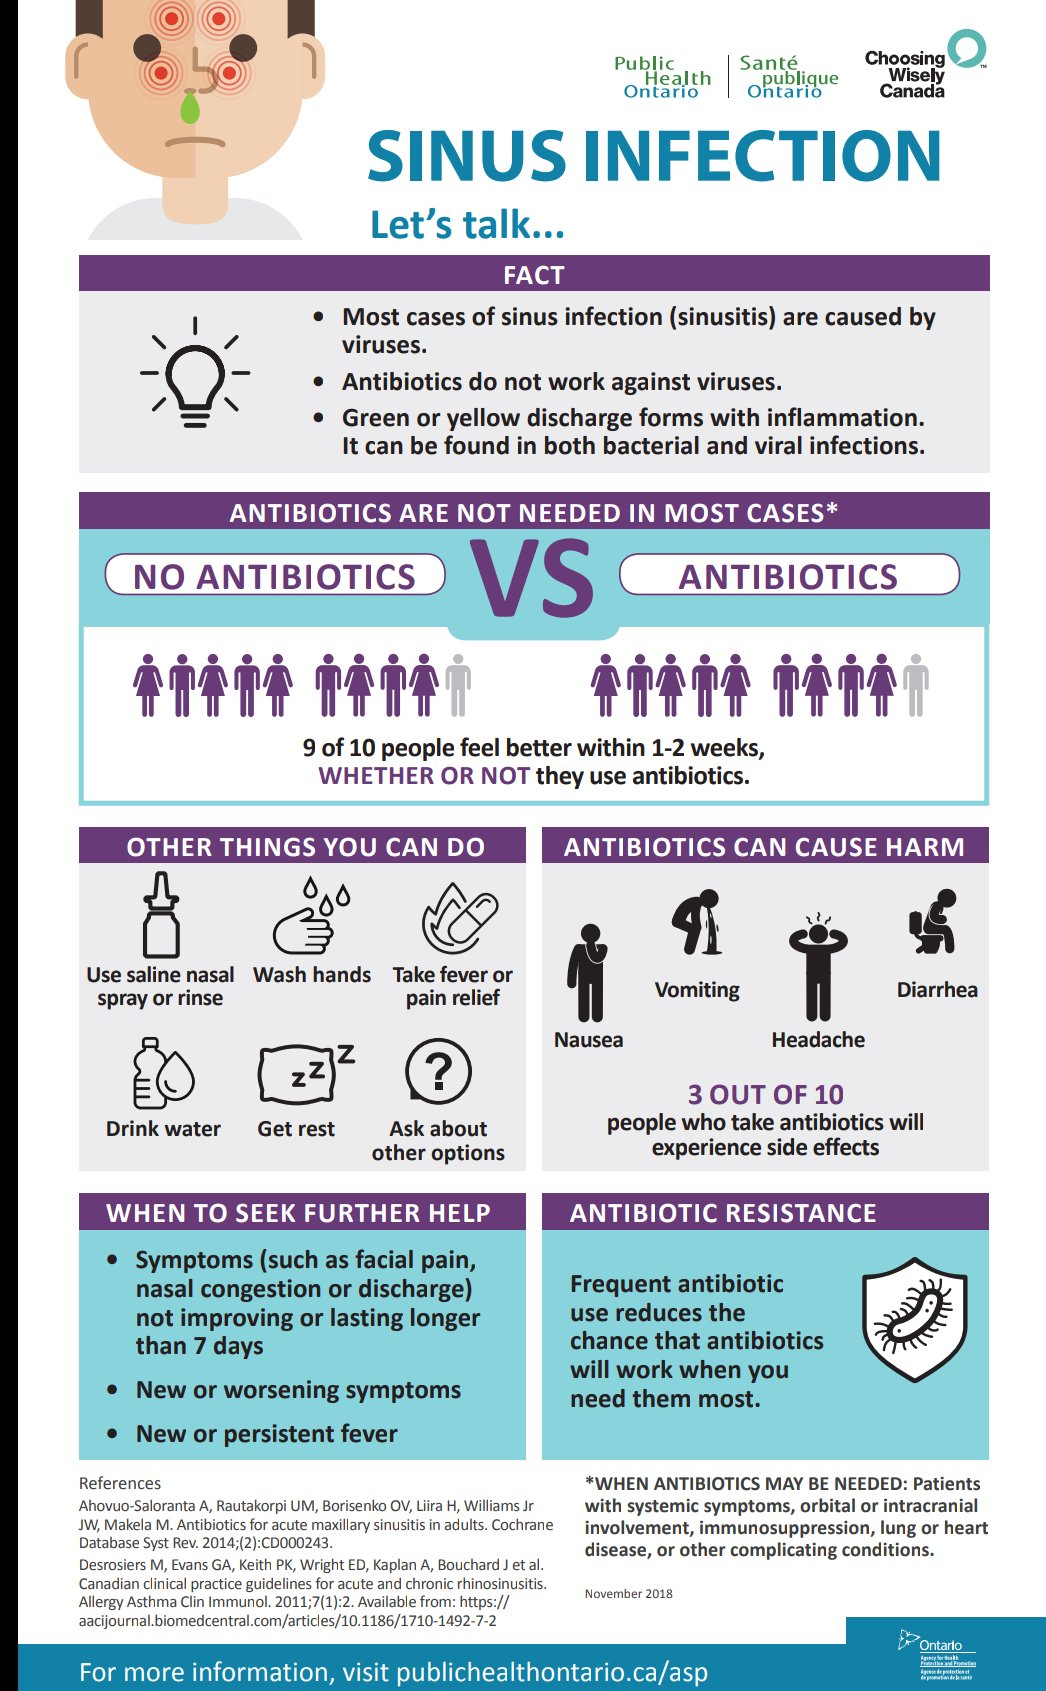 Antibiotics in Sinusitis - Choosing Wisely